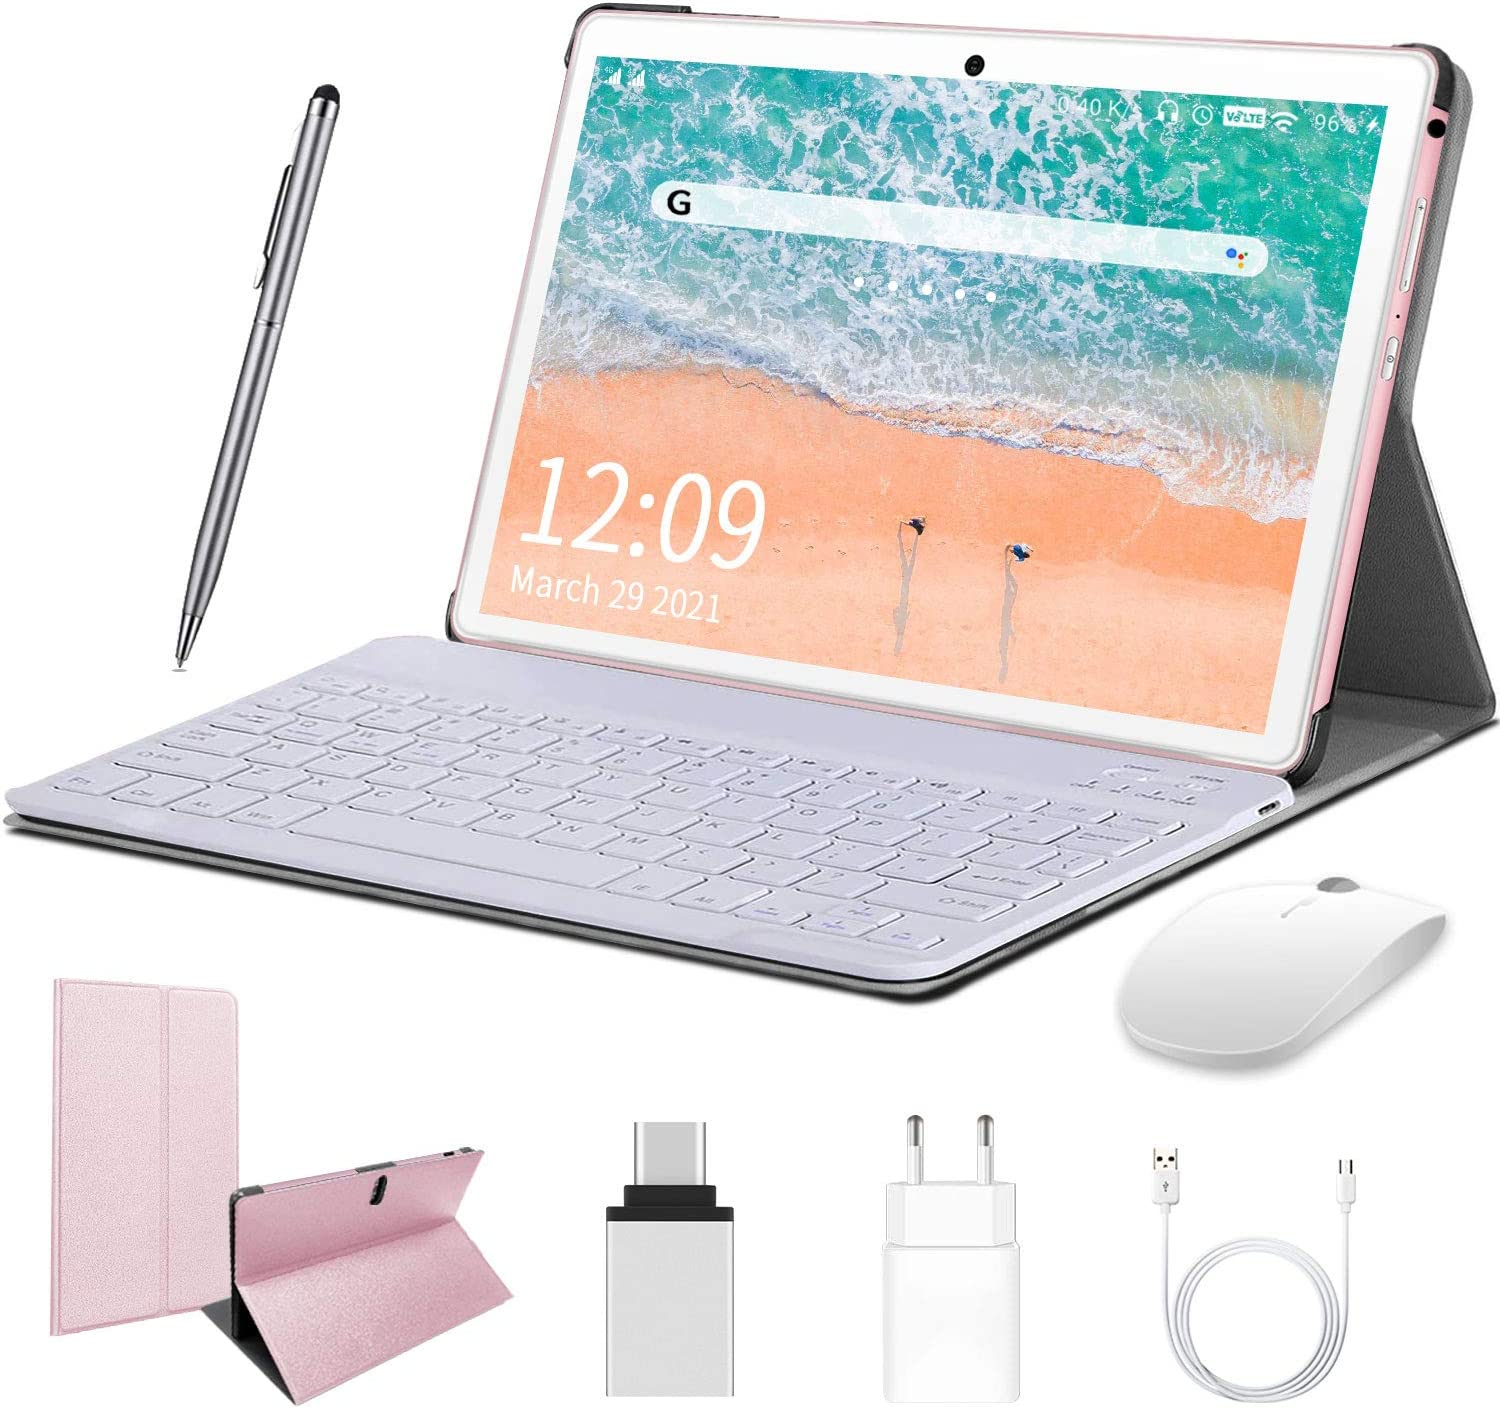 Android Tablet 10 inch, HD Touchscreen 2-in-1 Tablet with Keyboard Case Computer Quad-Core 1.3Ghz Processor 4G+64GB Harddrive Android 9.0 GO Tablets, Support 3G Phone Call, Type-C,BT4.2 GPS FM 4G WiFi